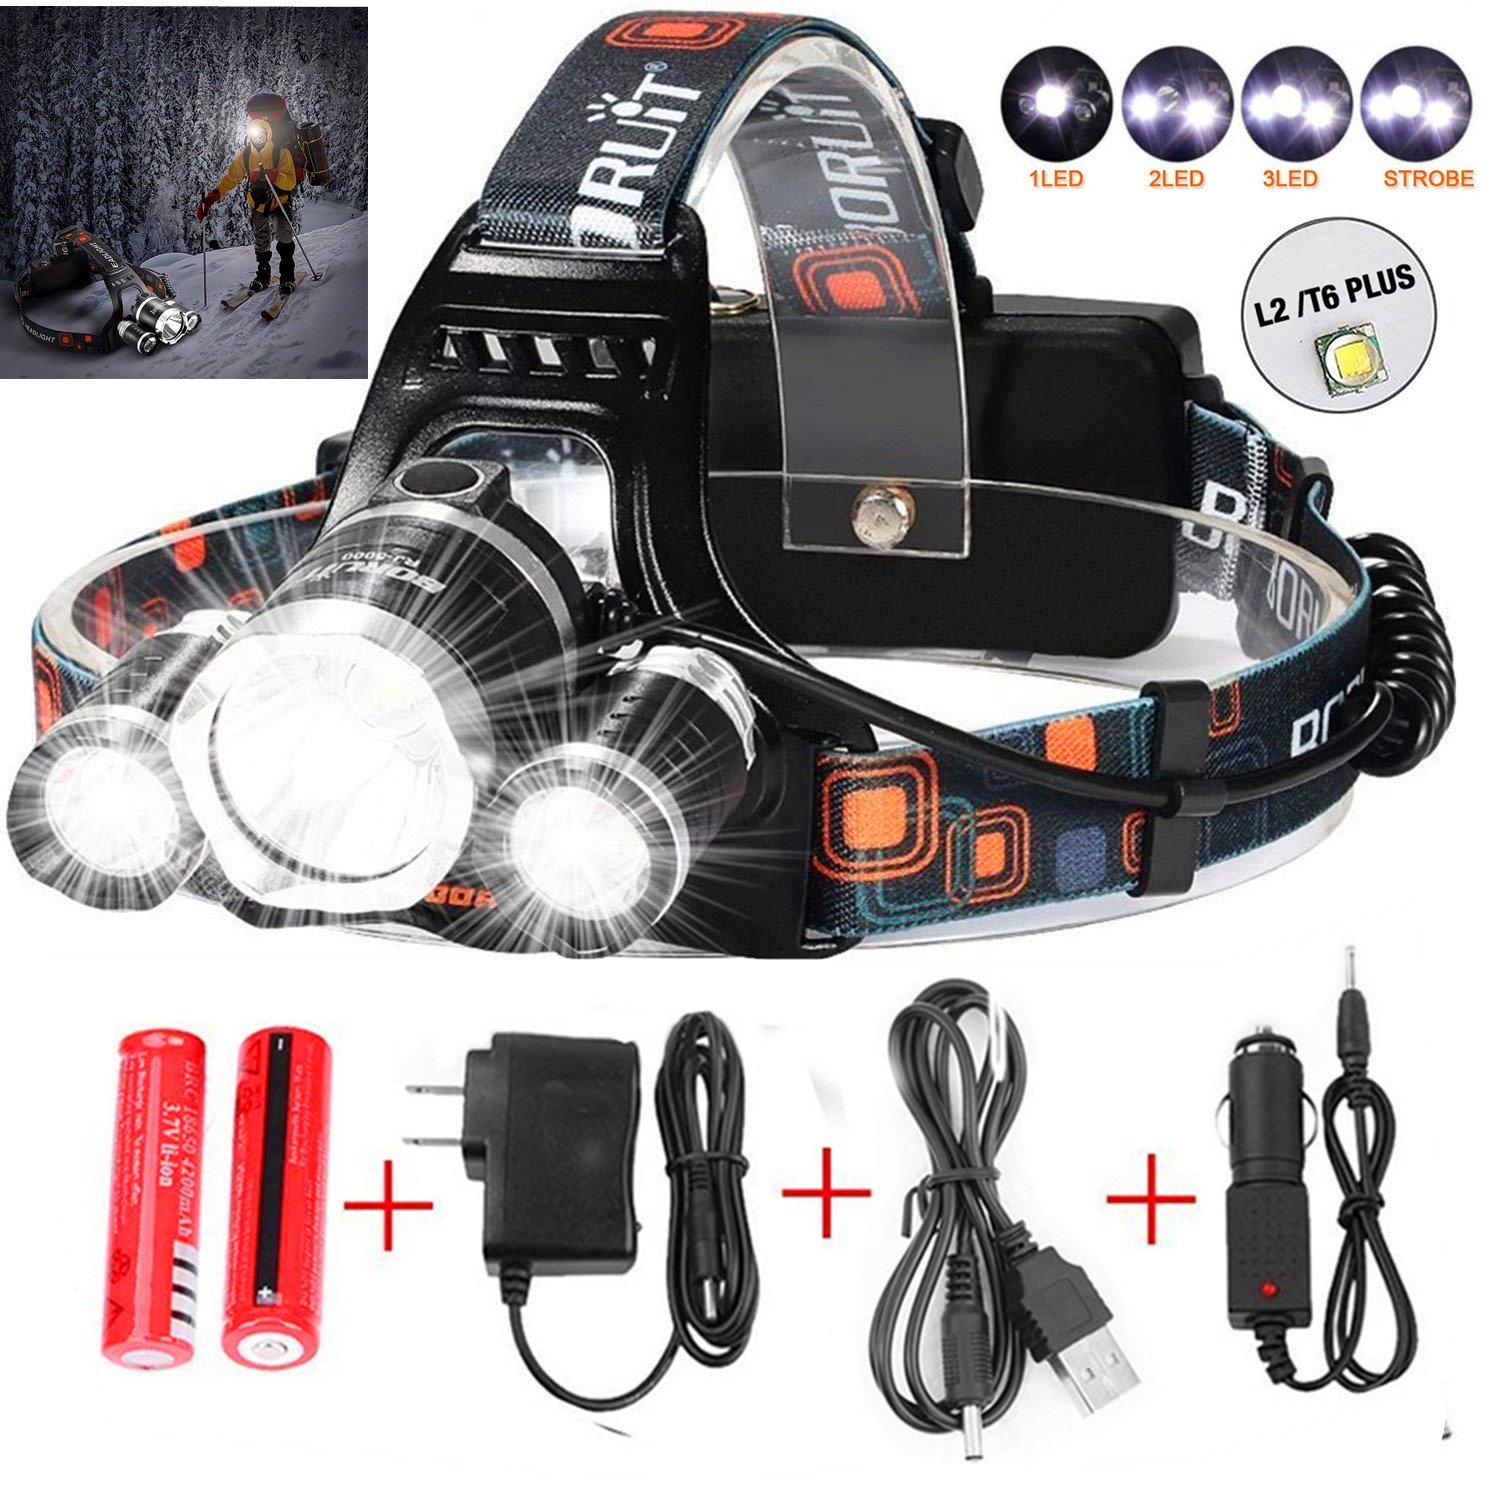 Super Bright Led Headlamp Flashlight, Brightest 10000 Lumen CREE LED Work Headlight,Waterproof Hard Hat Light,Rechargeable 18650 Battery,Best Head Lights for Camping Running Outdoor Sports(Silver)